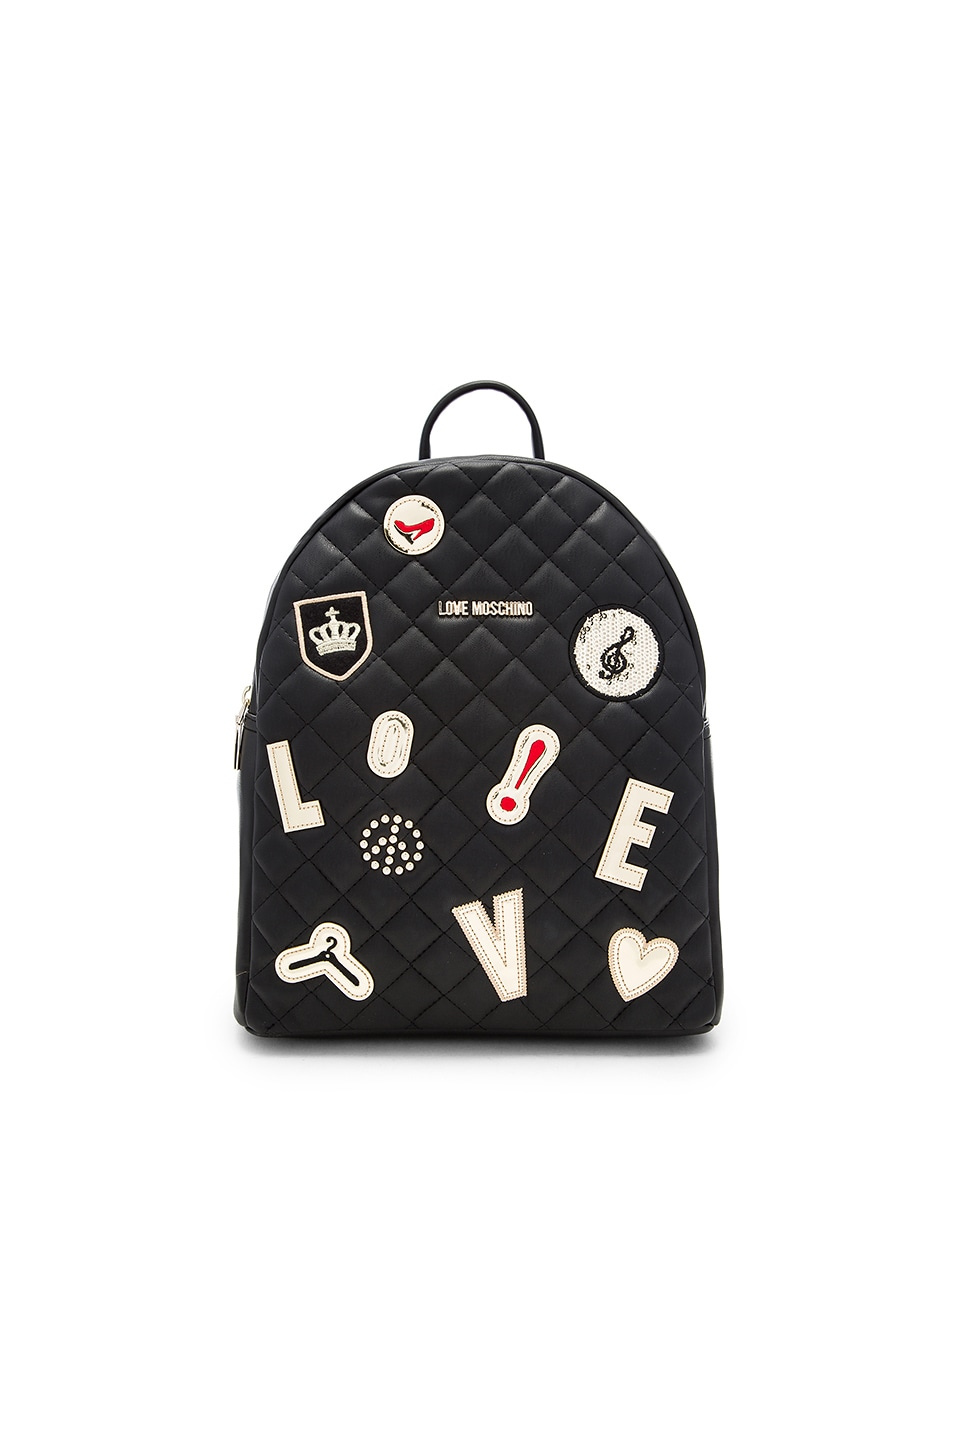 Love Moschino Patch Quilted Backpack in Black